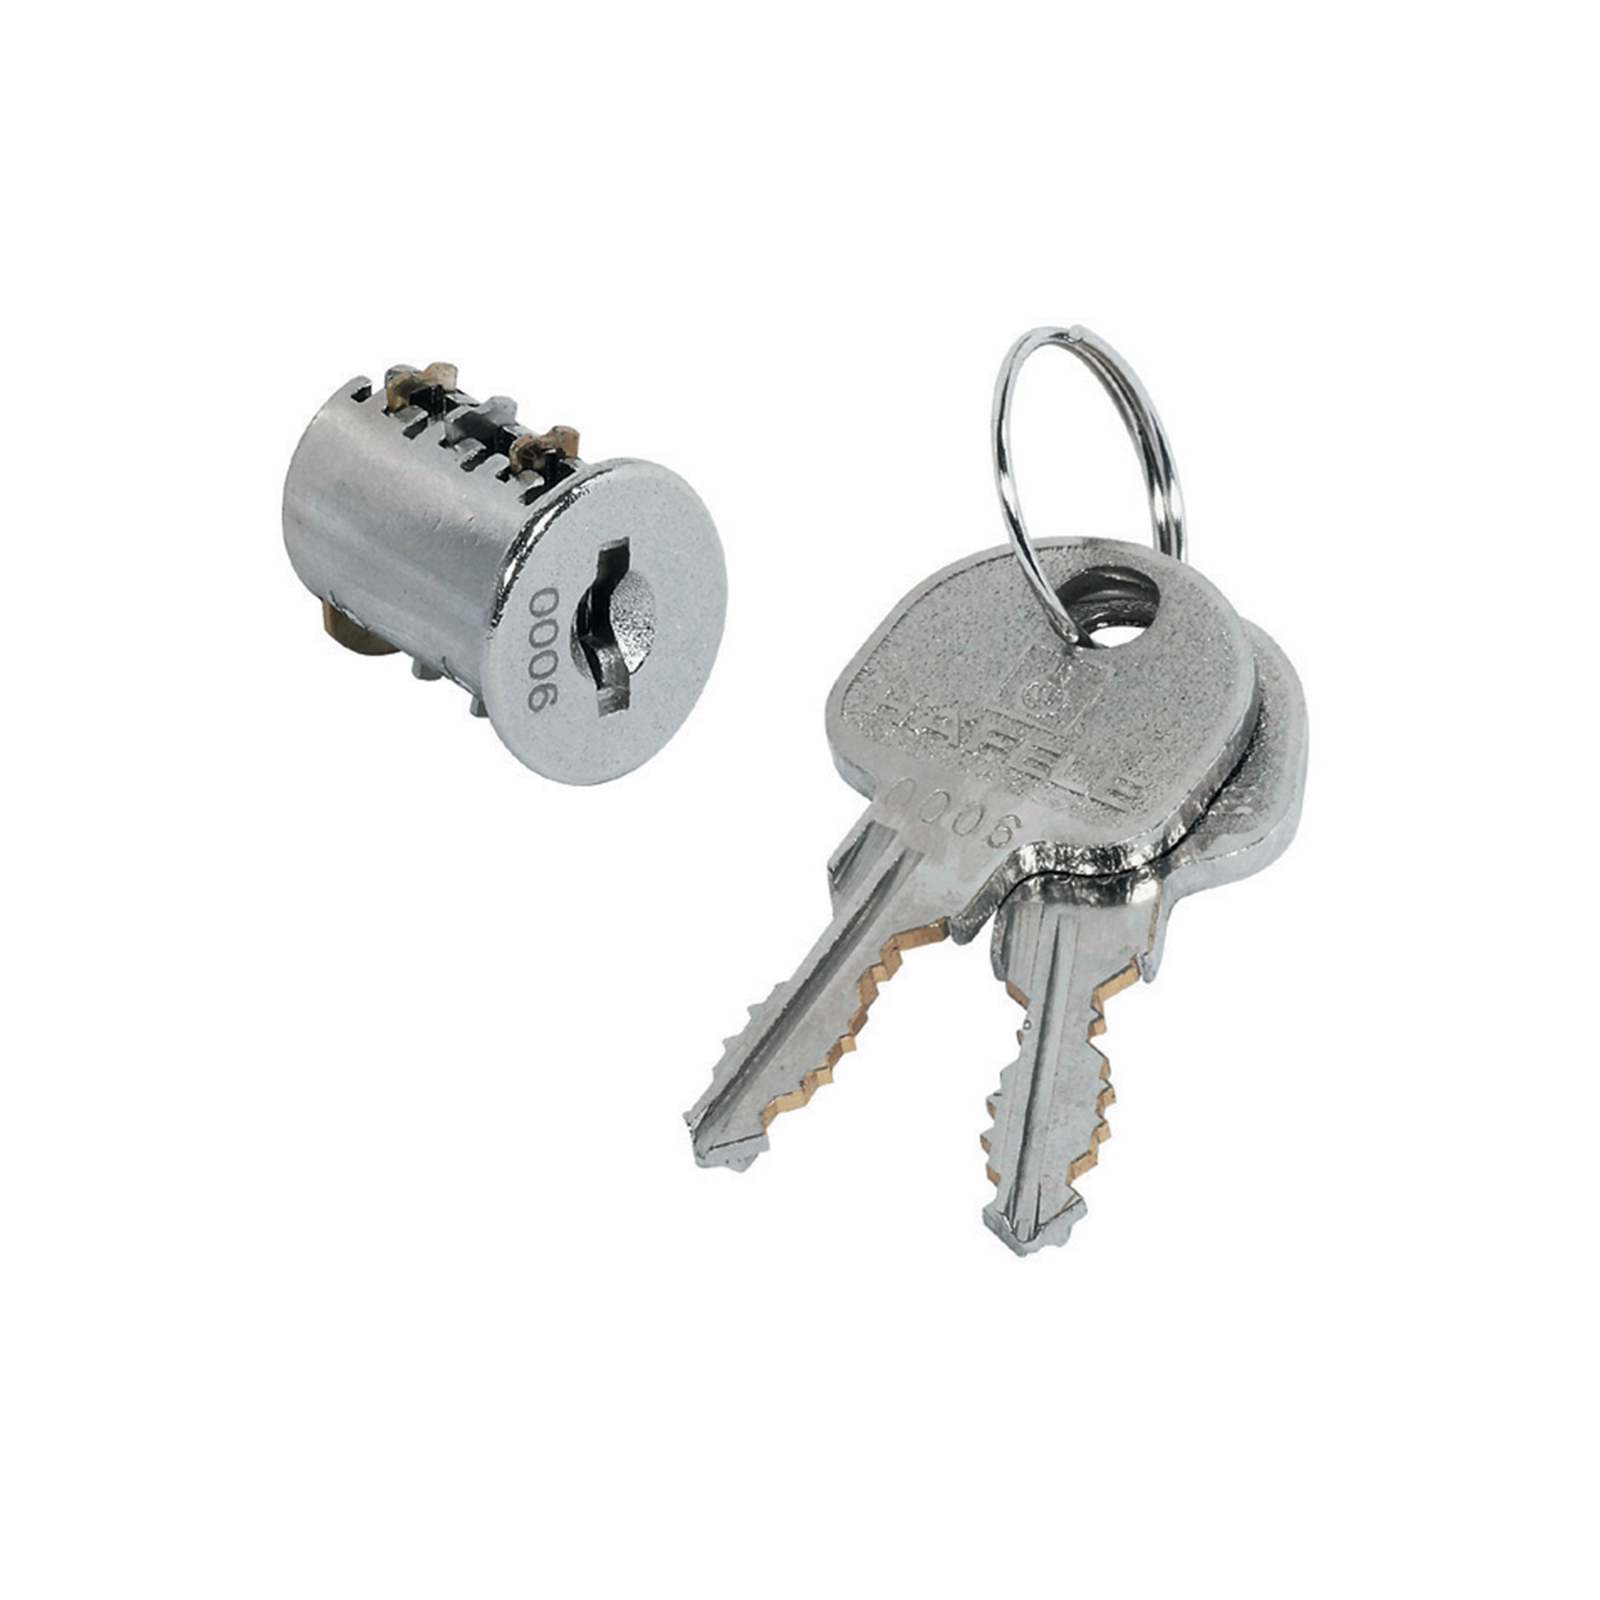 T20 Cabinet Locks Systems 32095